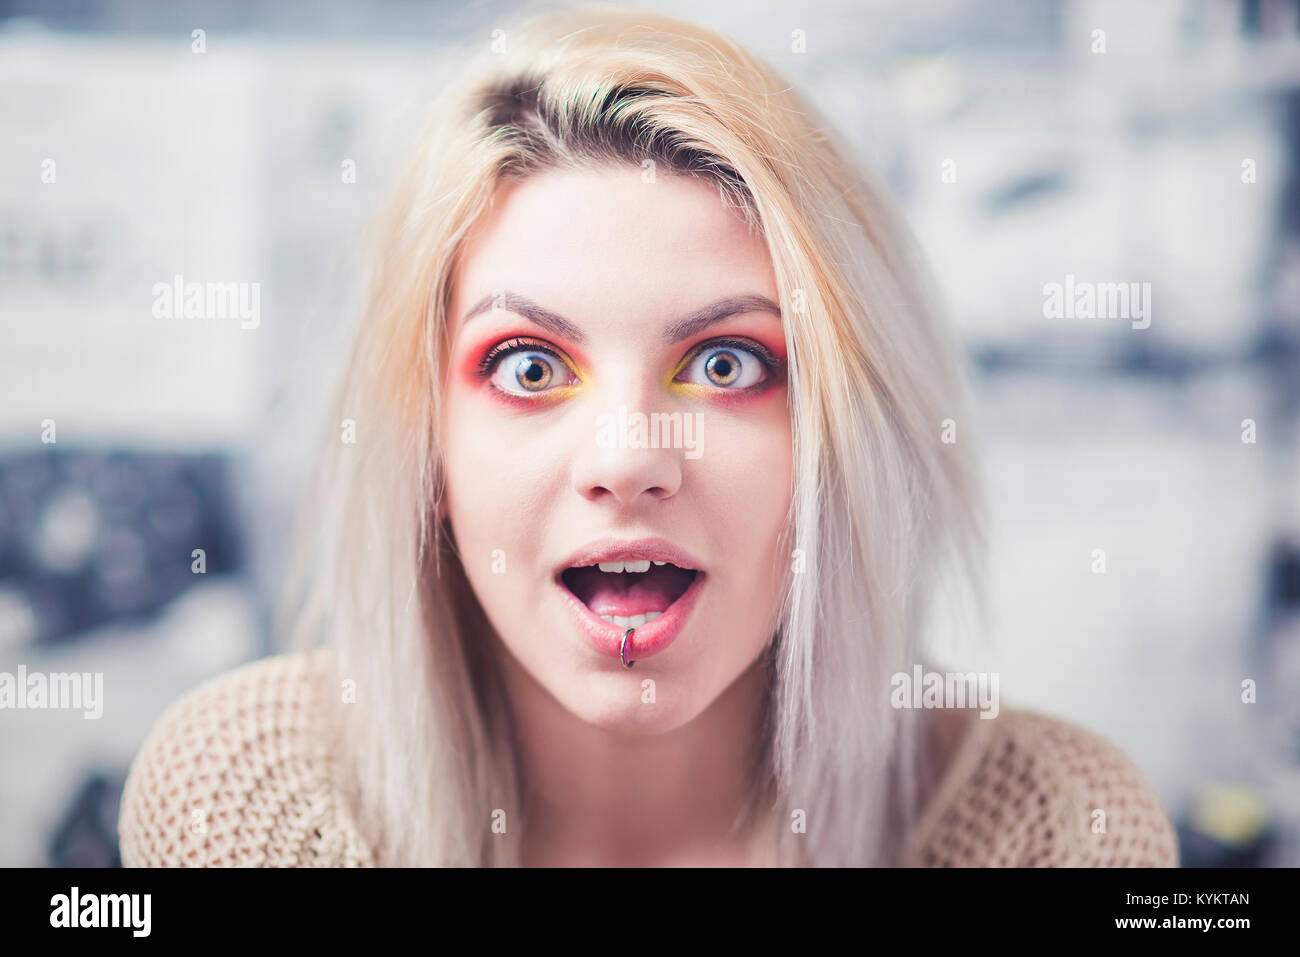 Blond young woman shocked expression red makeup - Stock Image